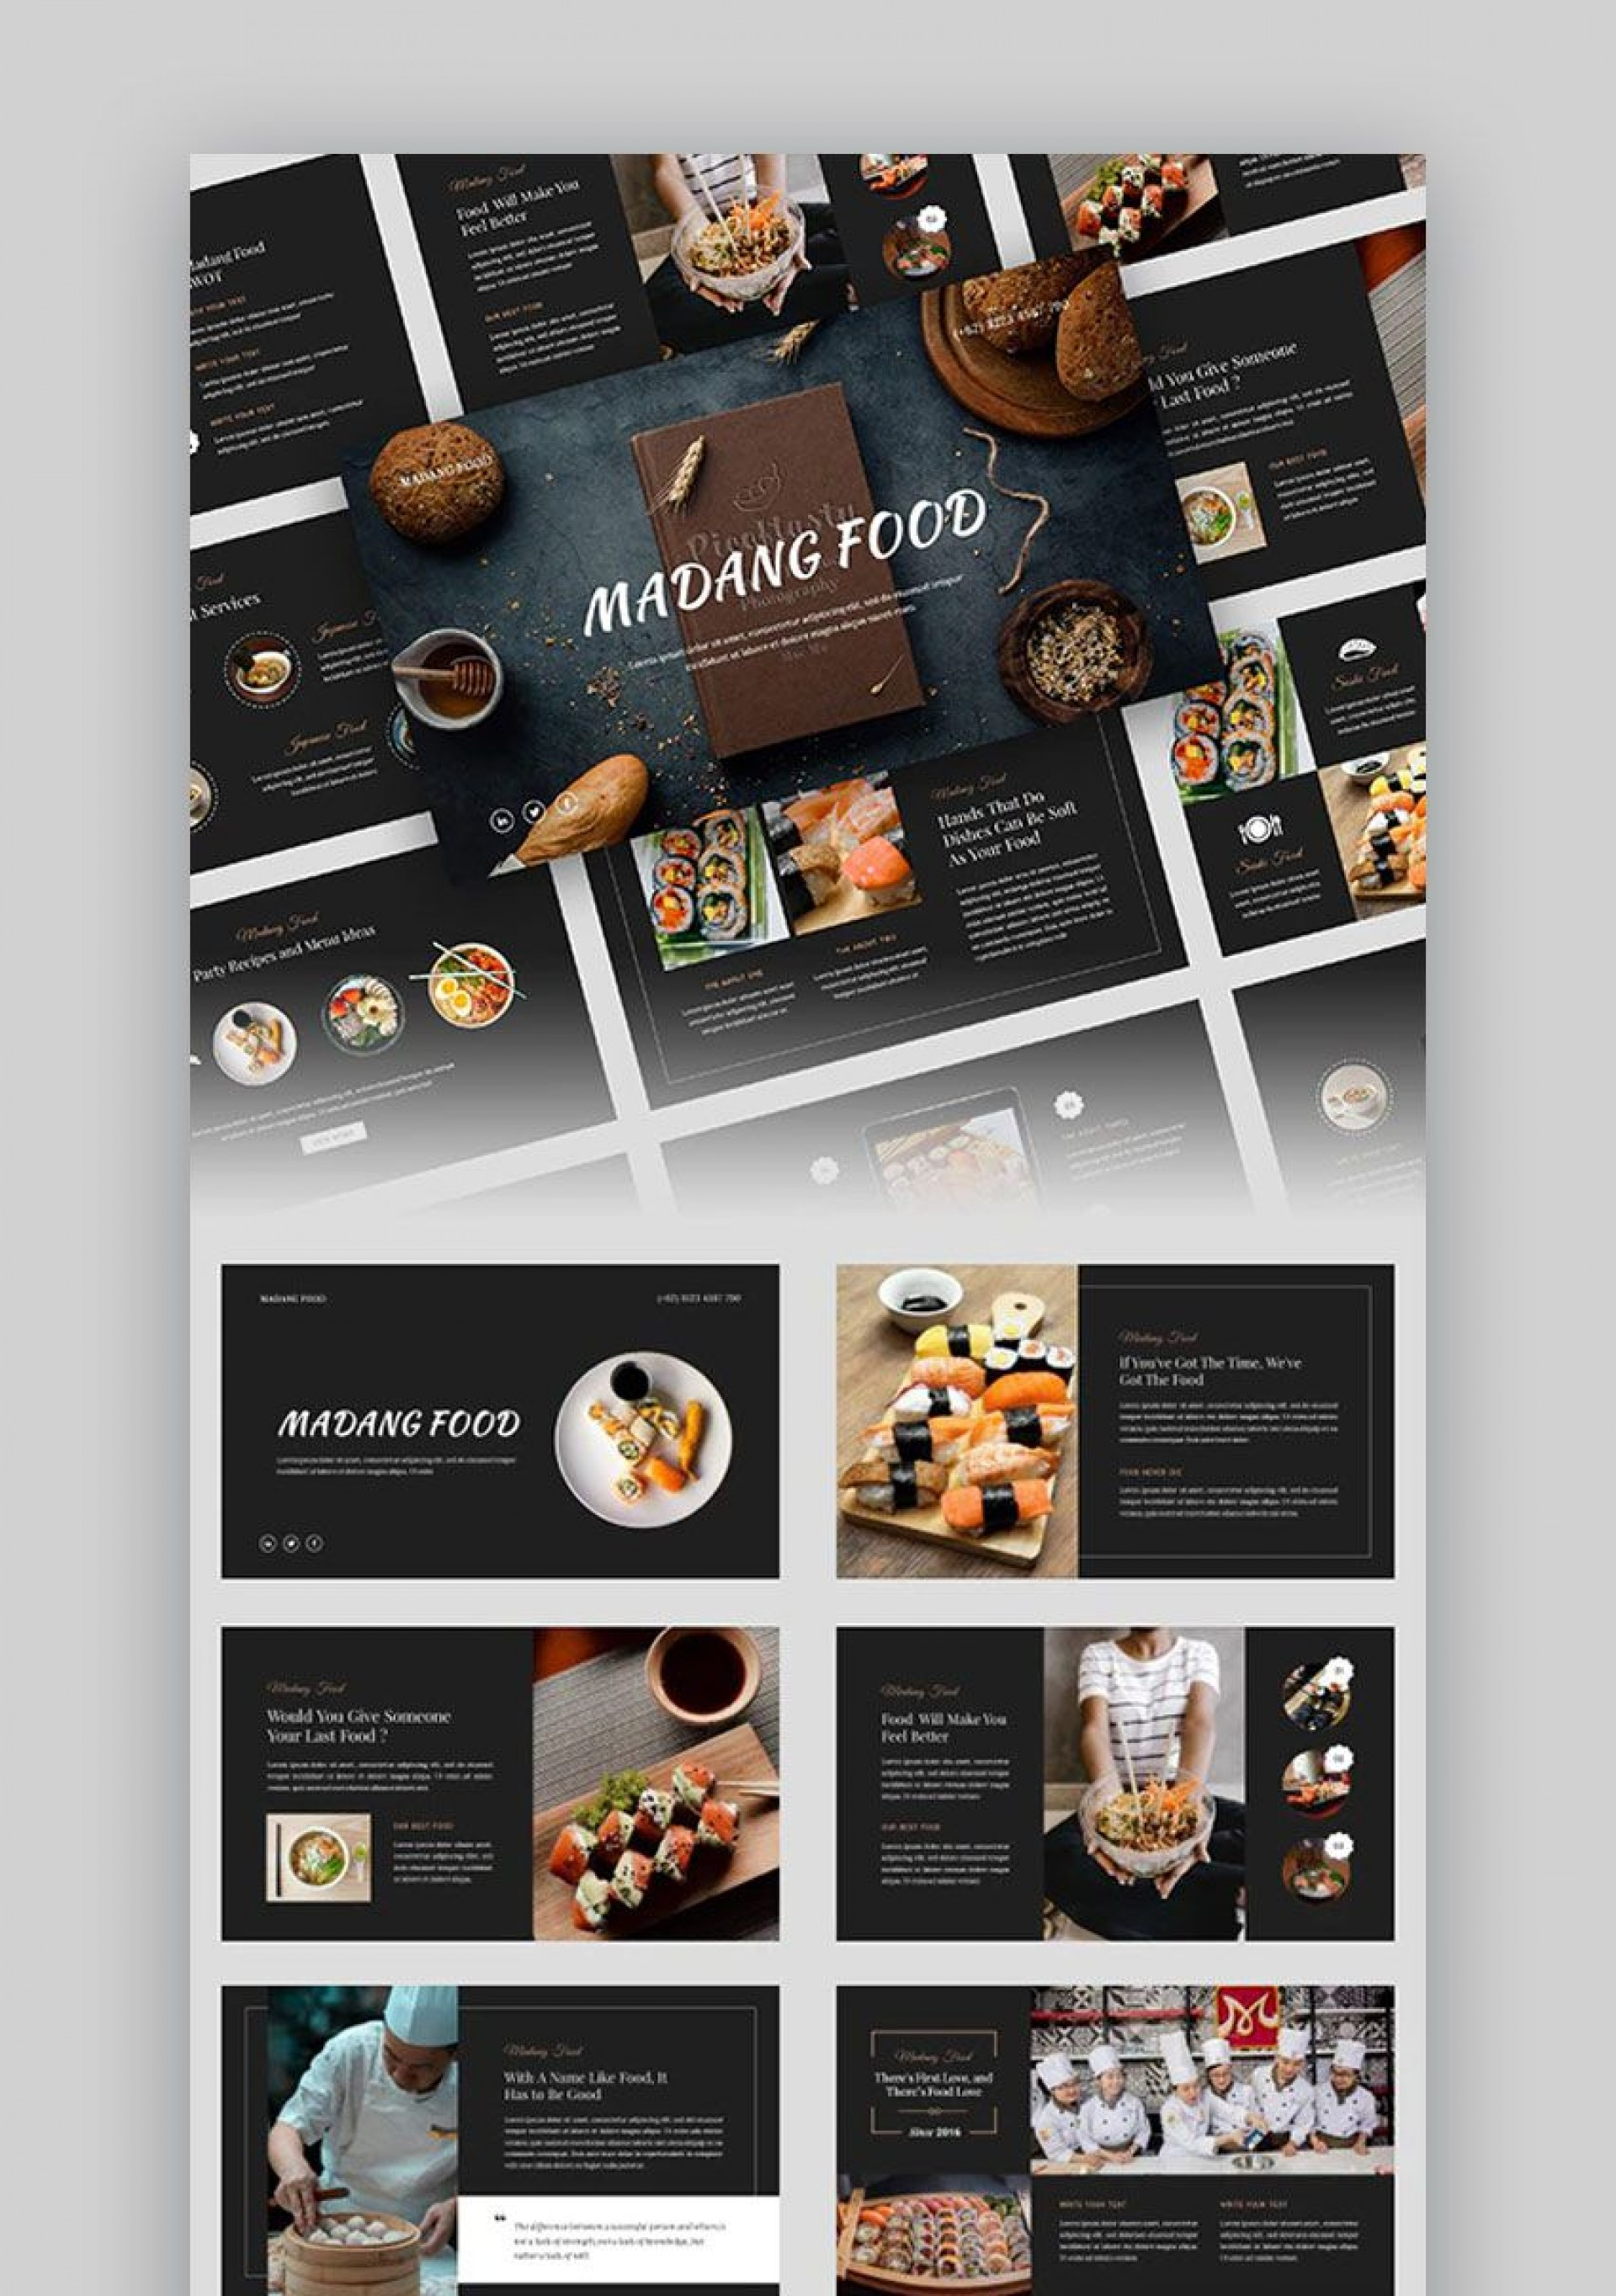 006 Awesome Small Restaurant Busines Plan Ppt Presentation Highest Clarity  Powerpoint1920